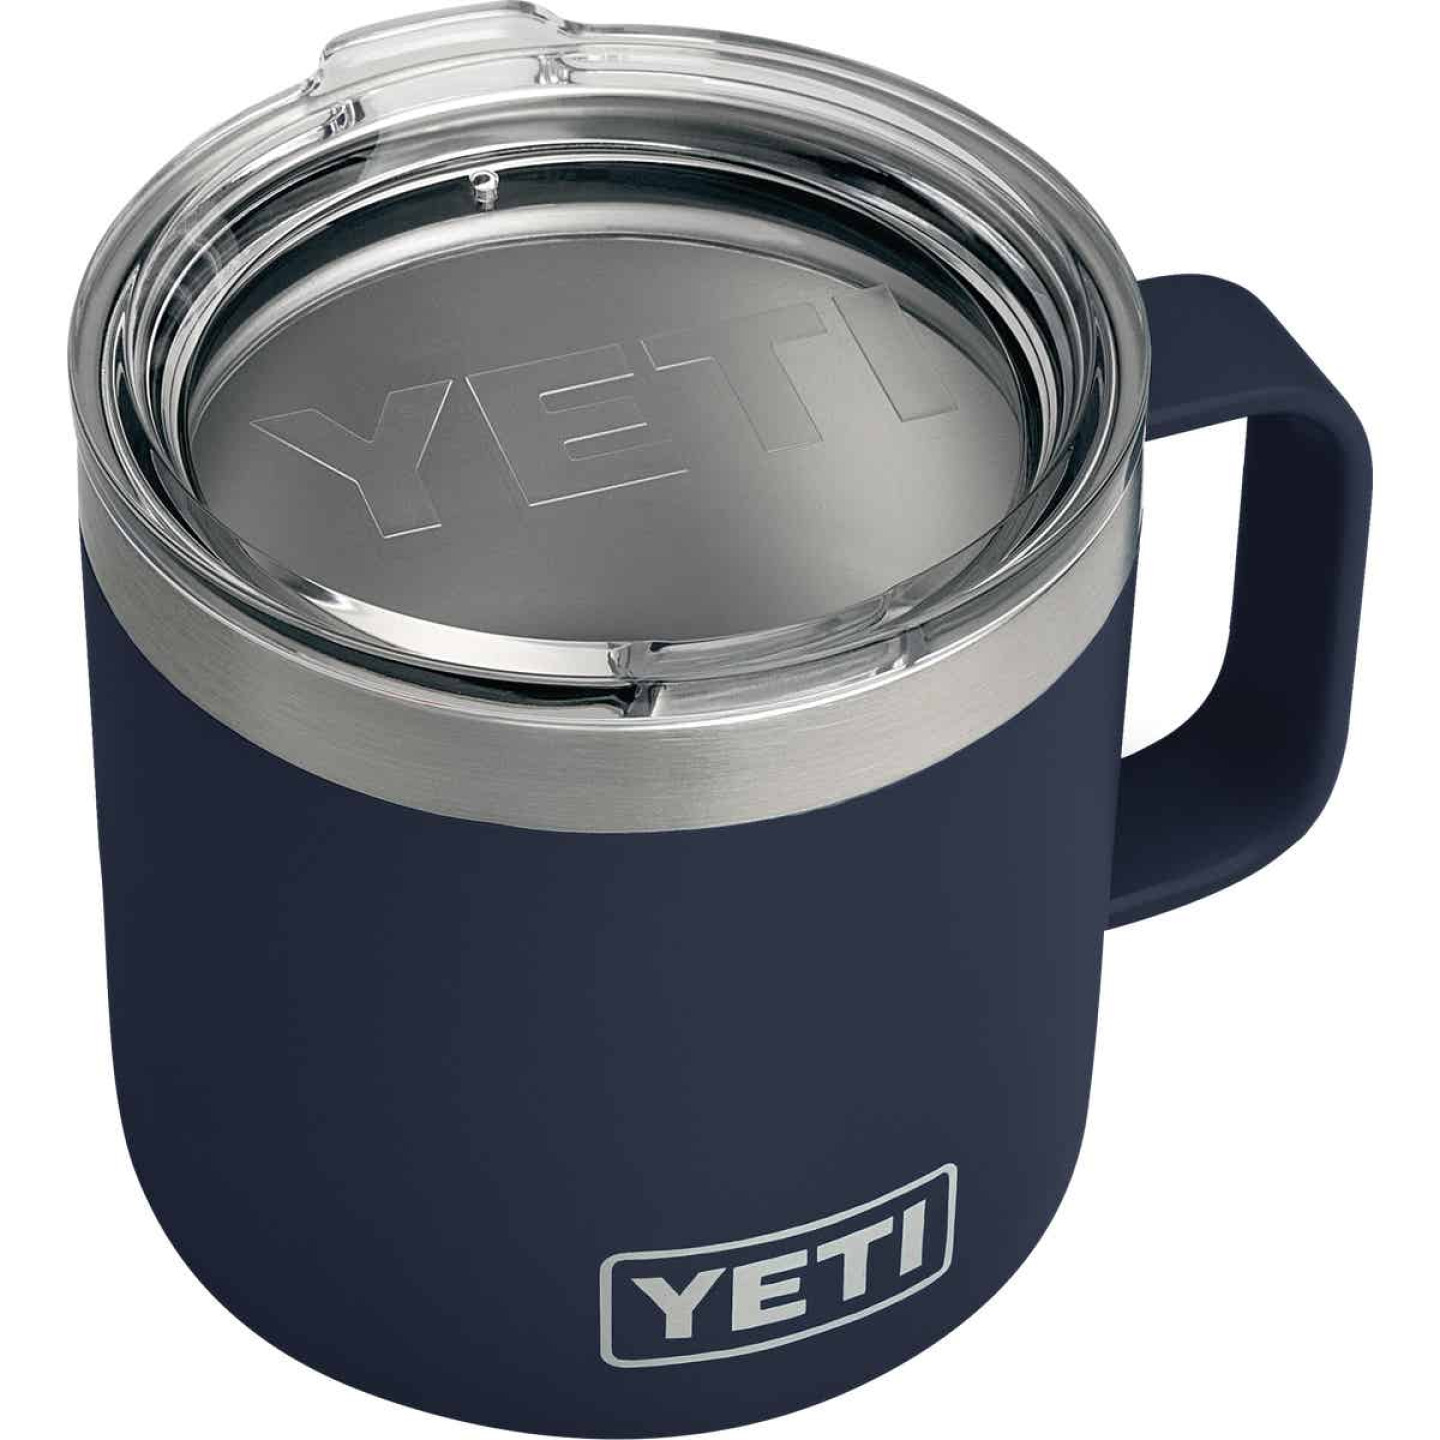 Yeti Rambler 14 Oz. Navy Blue Stainless Steel Insulated Mug Image 1